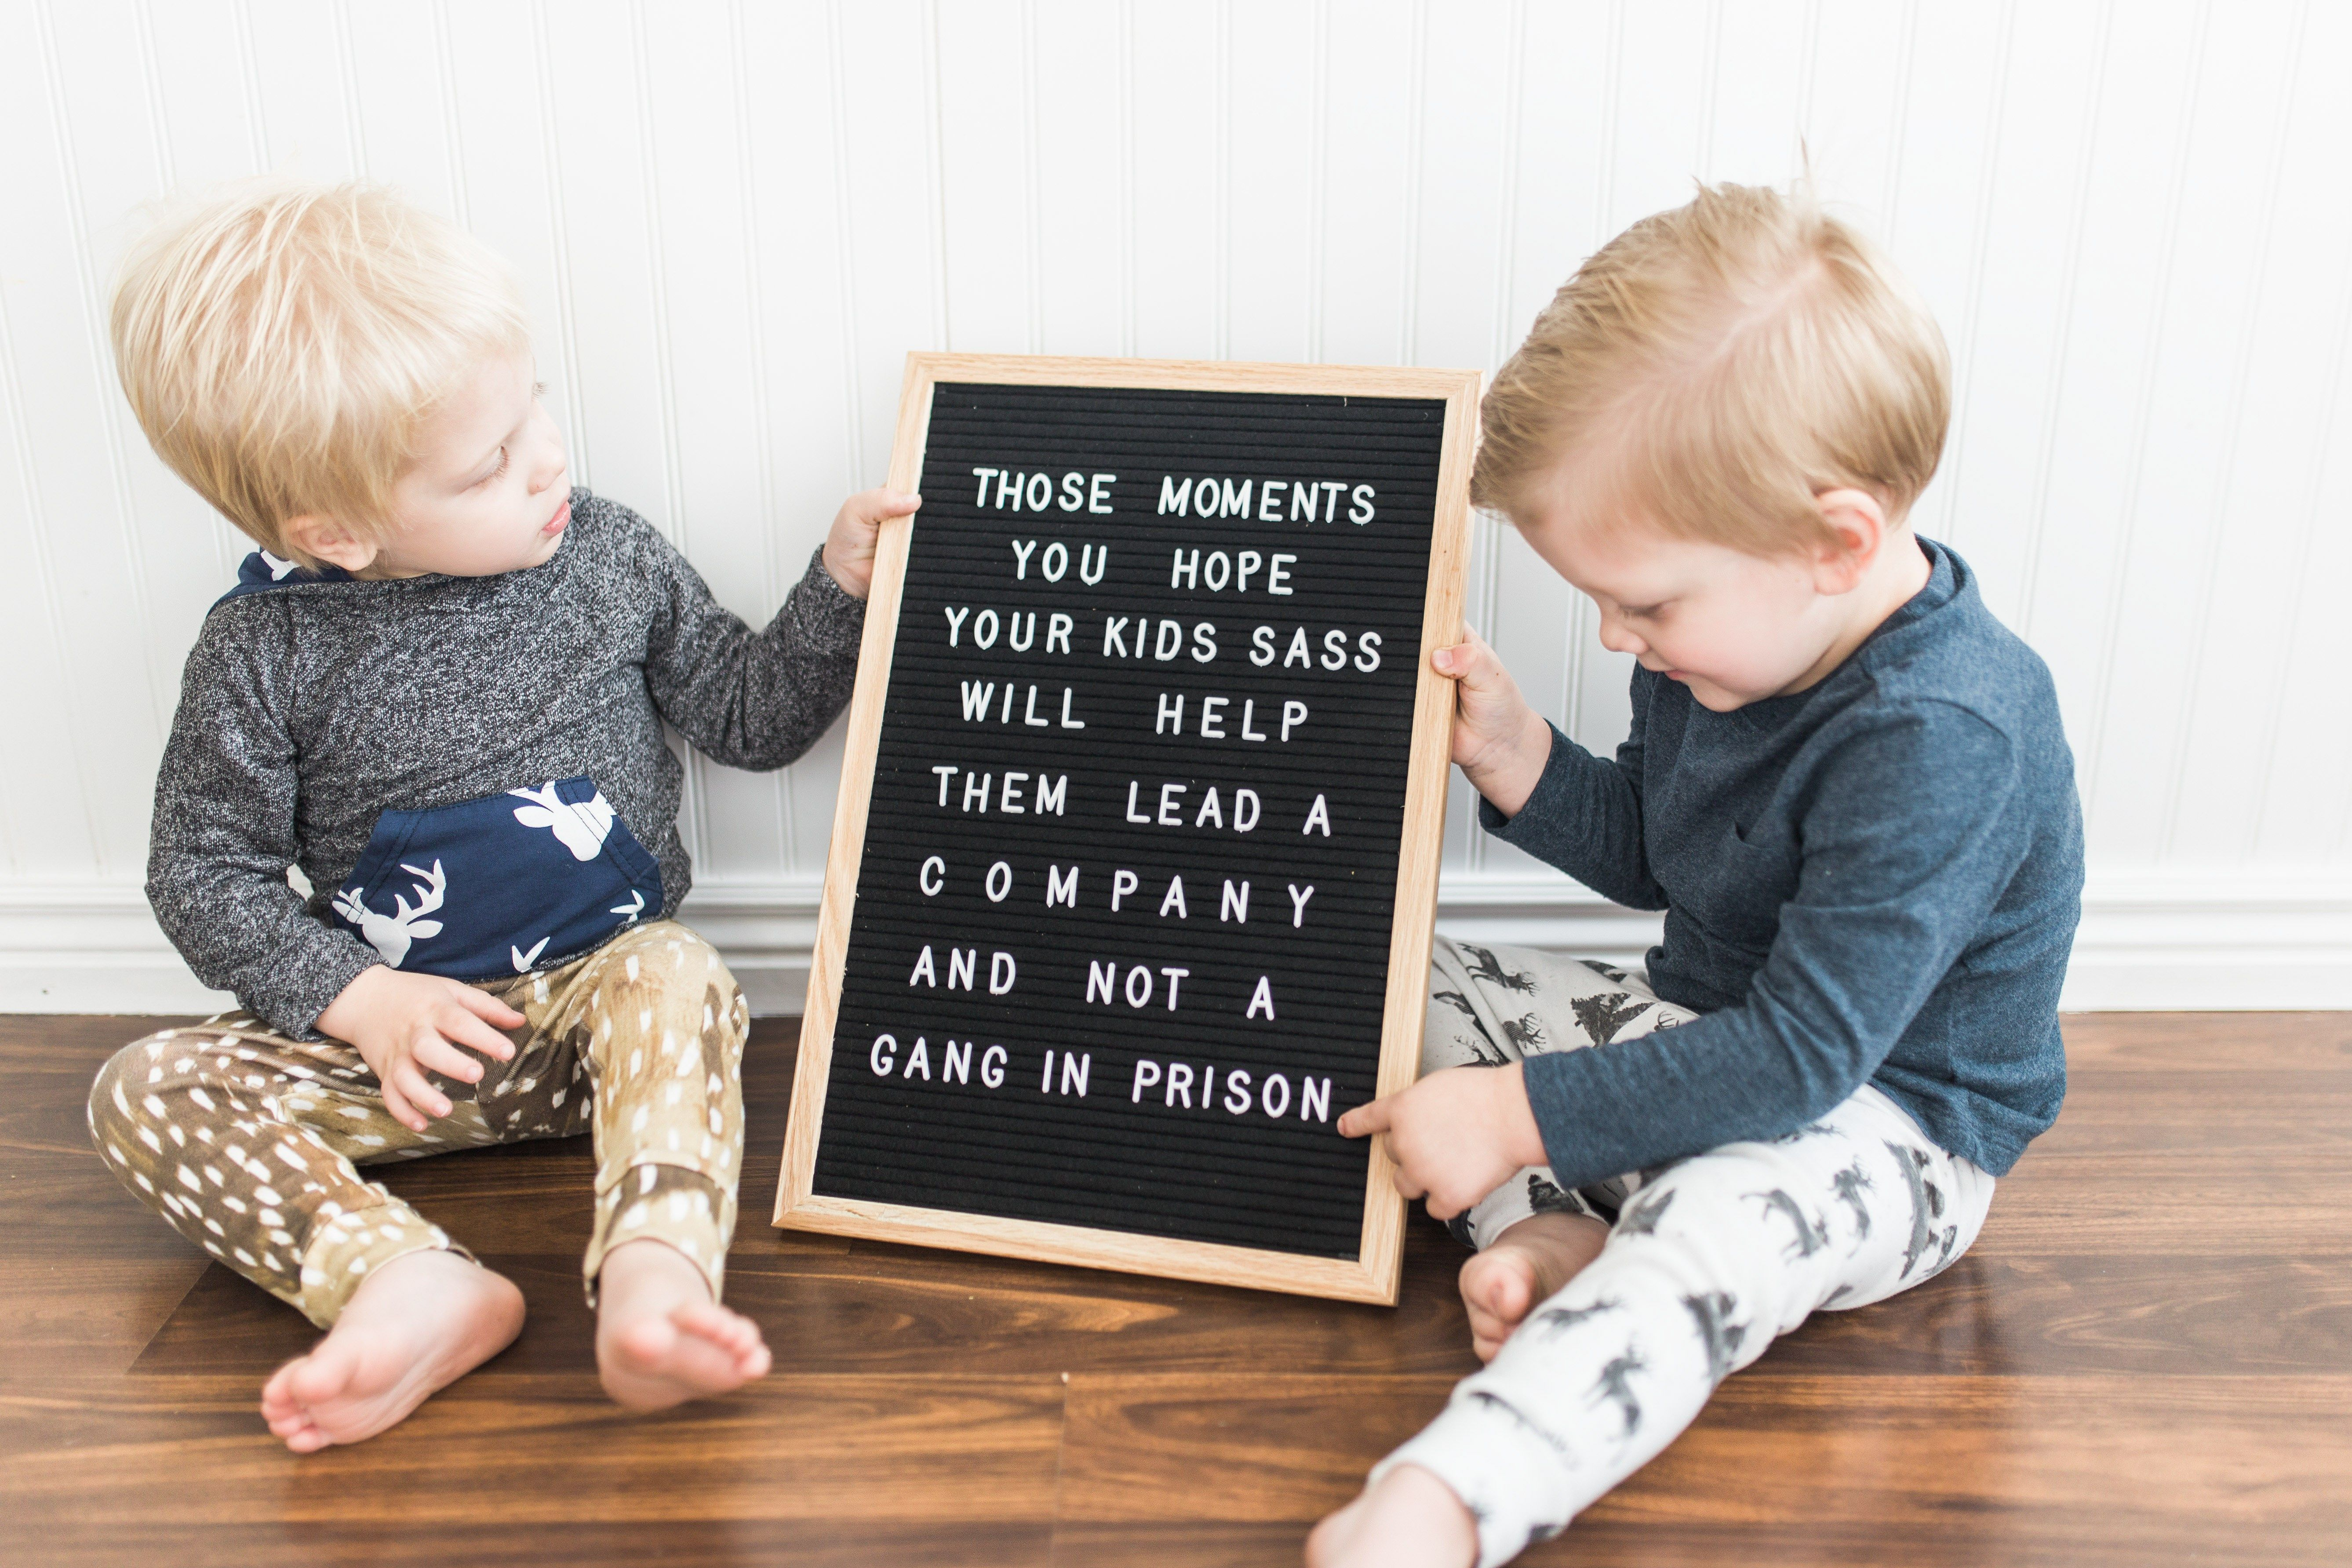 Funny Letterboard Quotes Twin Boys Funny Quotes About Kids Toddler Humor Funny Quotes For Kids Quotes For Kids